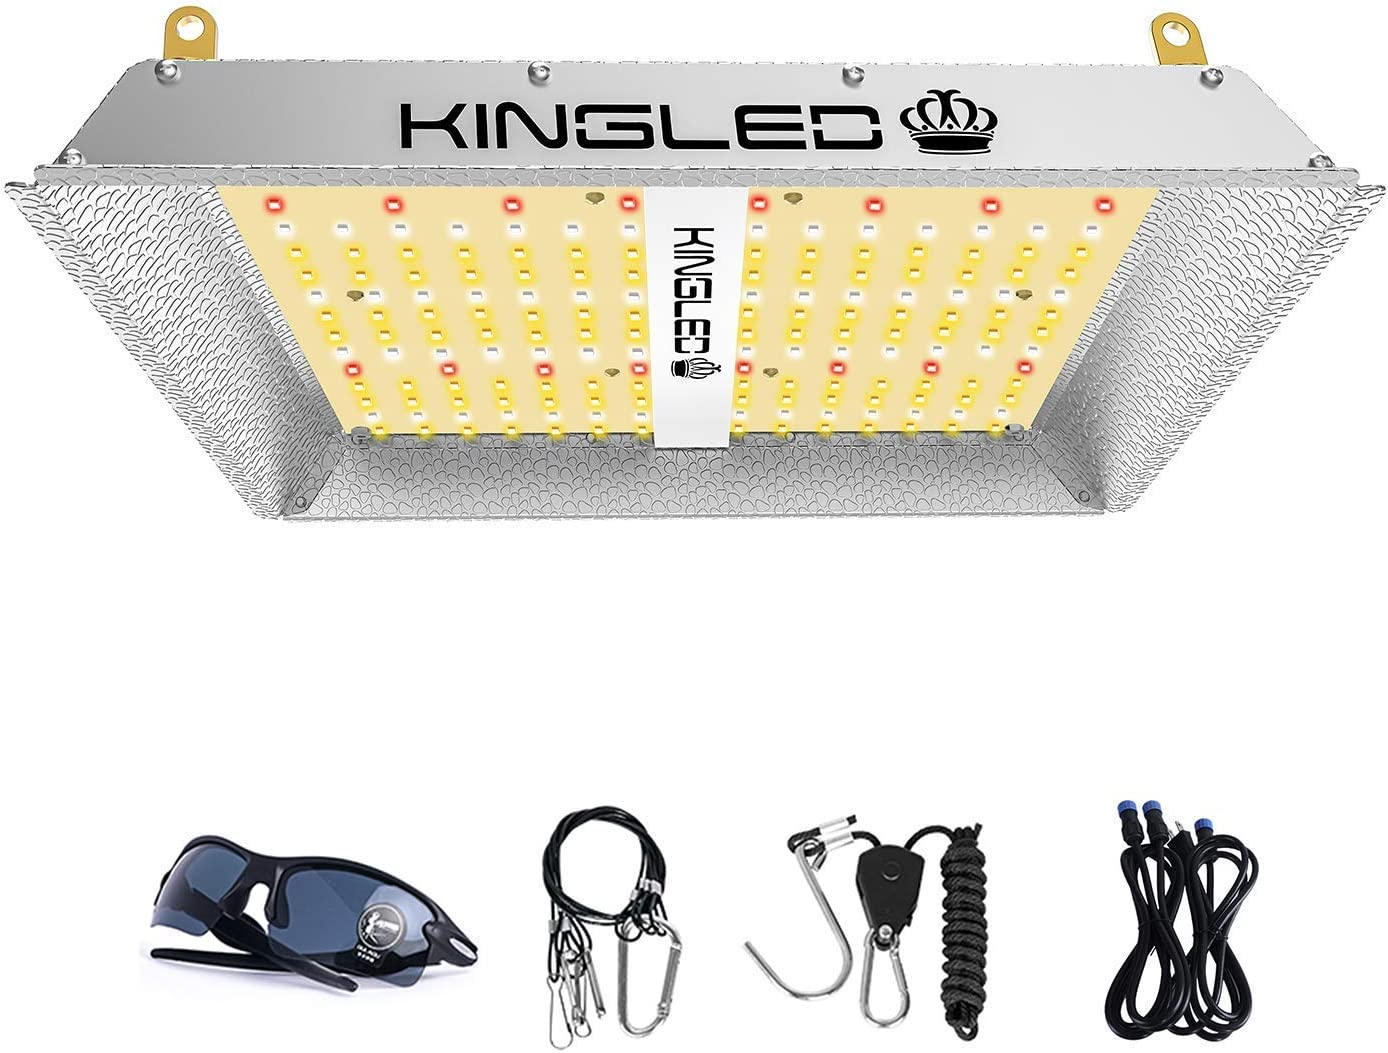 KingLED UL-600 LED Grow Light 2x2ft Full Spectrum Grow Lamp Plants Growing for Hydroponic Indoor Seeding Veg and Bloom Greenhouse Growing